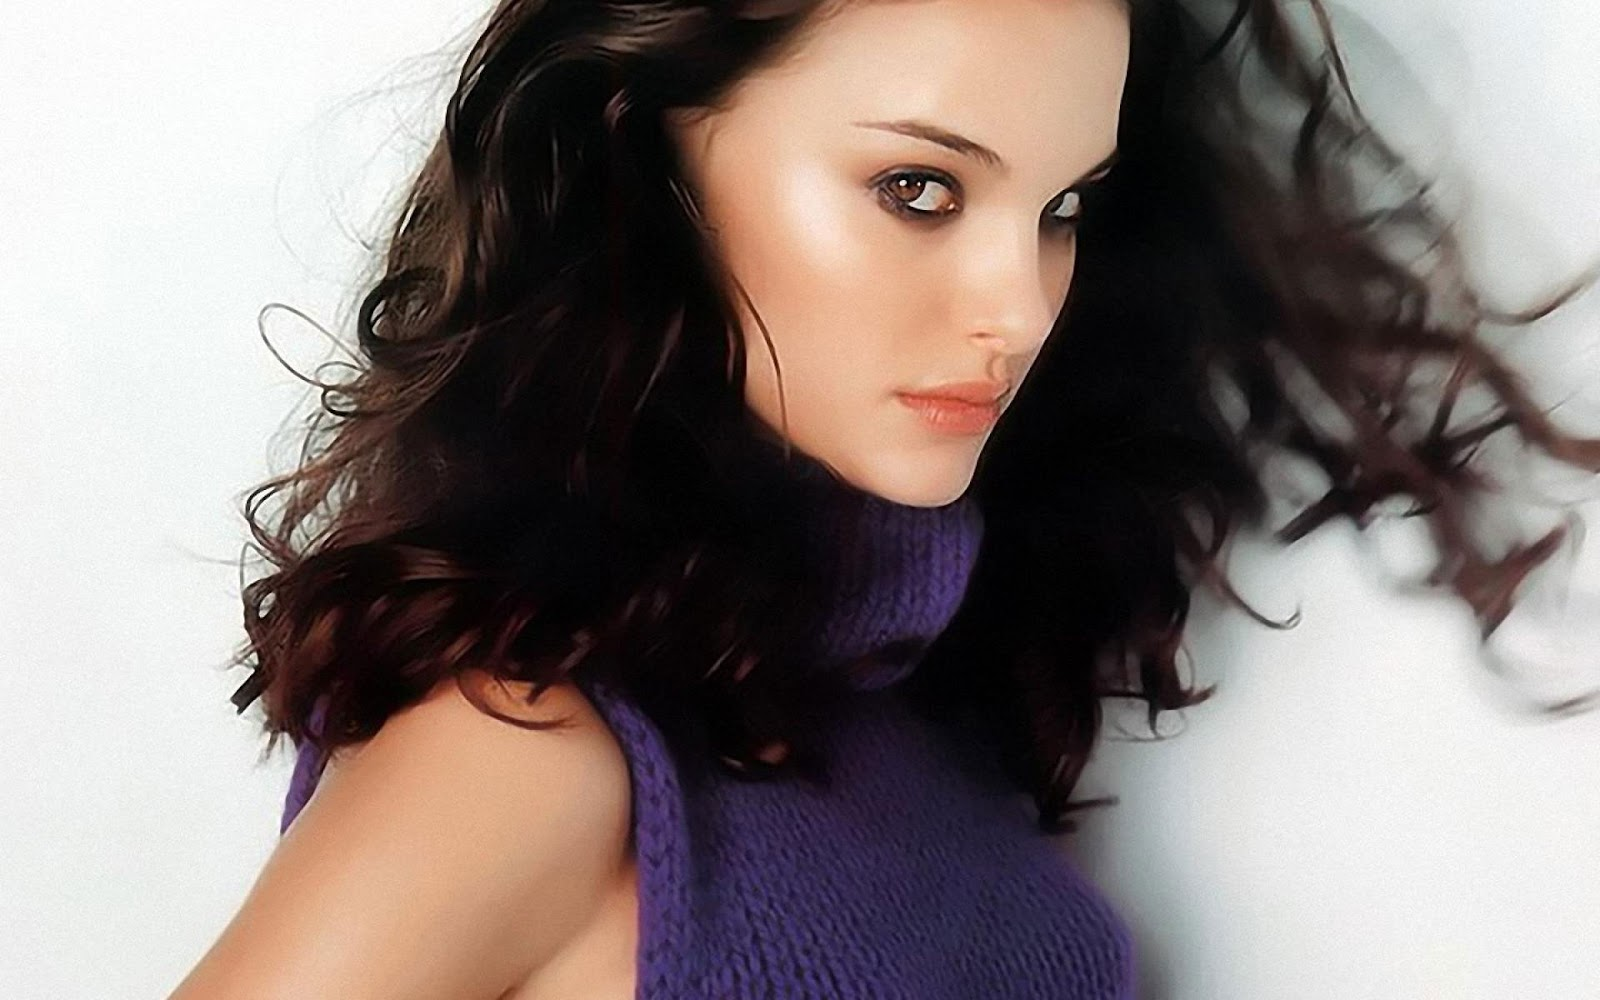 Natalie Portman Hd Wallpaper: Bollywood Actress HD Wallpapers Hollywood Actress HD